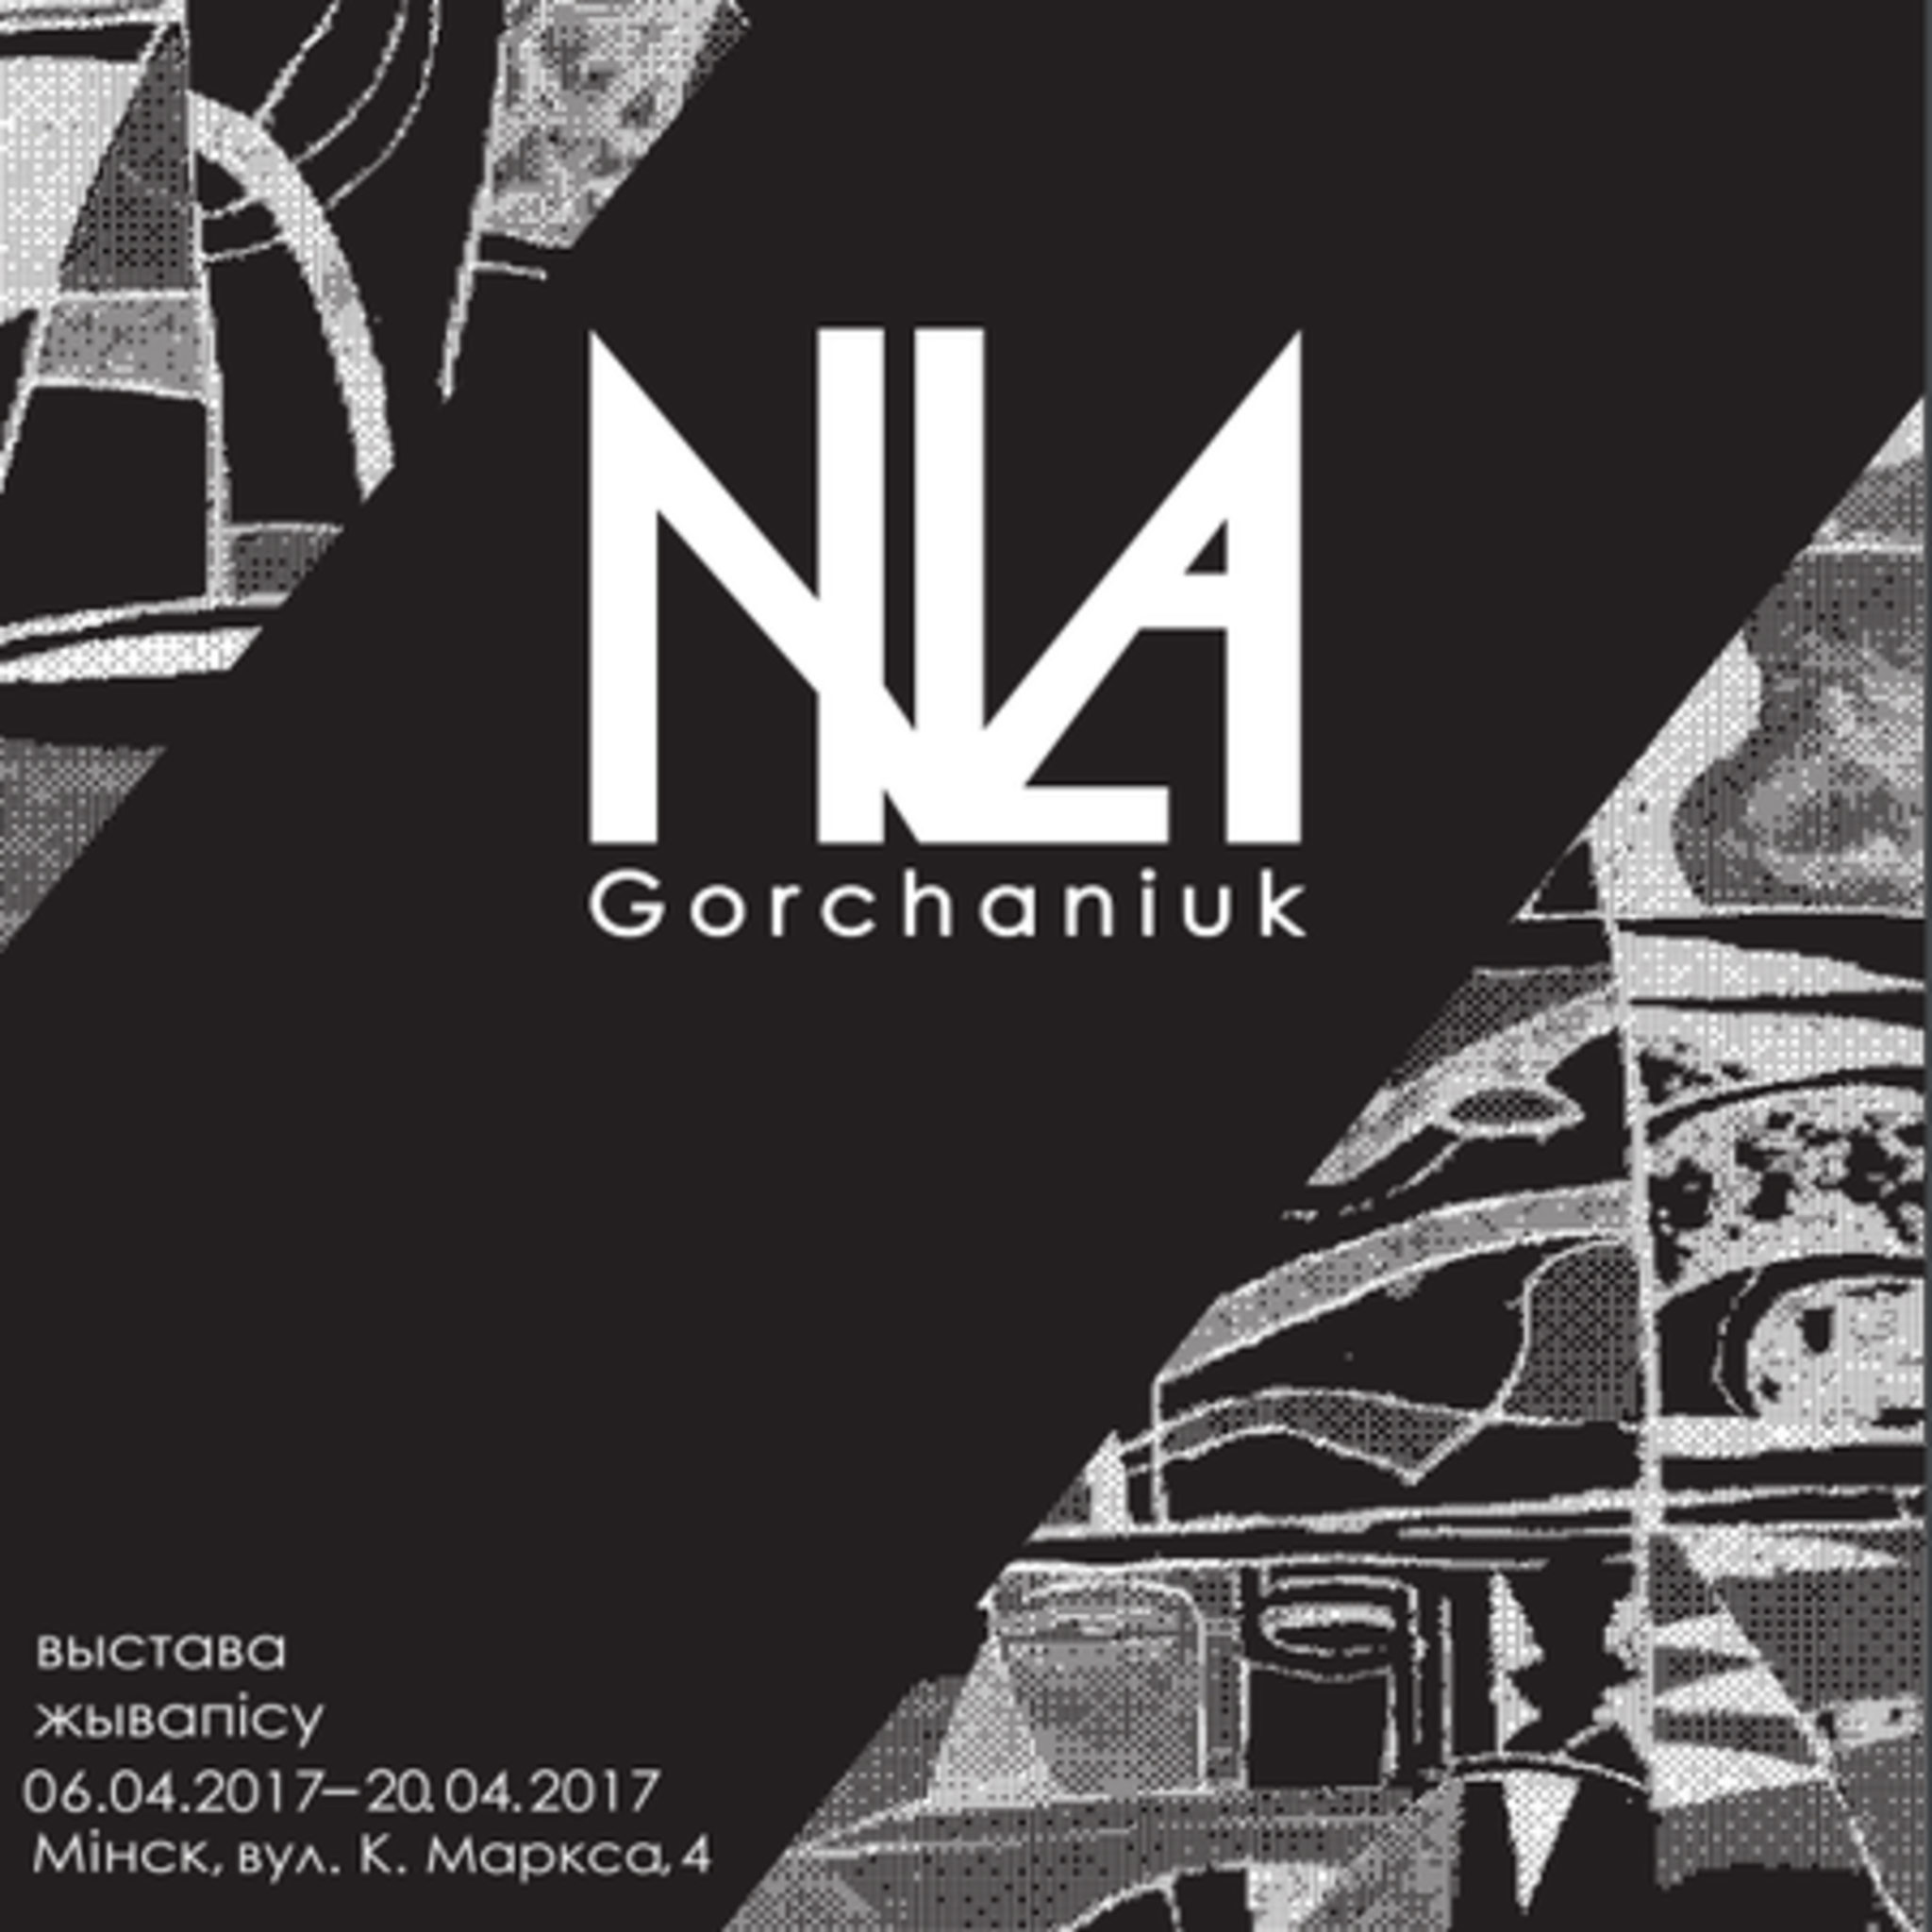 Exhibition of paintings by Nilia Gorchanyuk